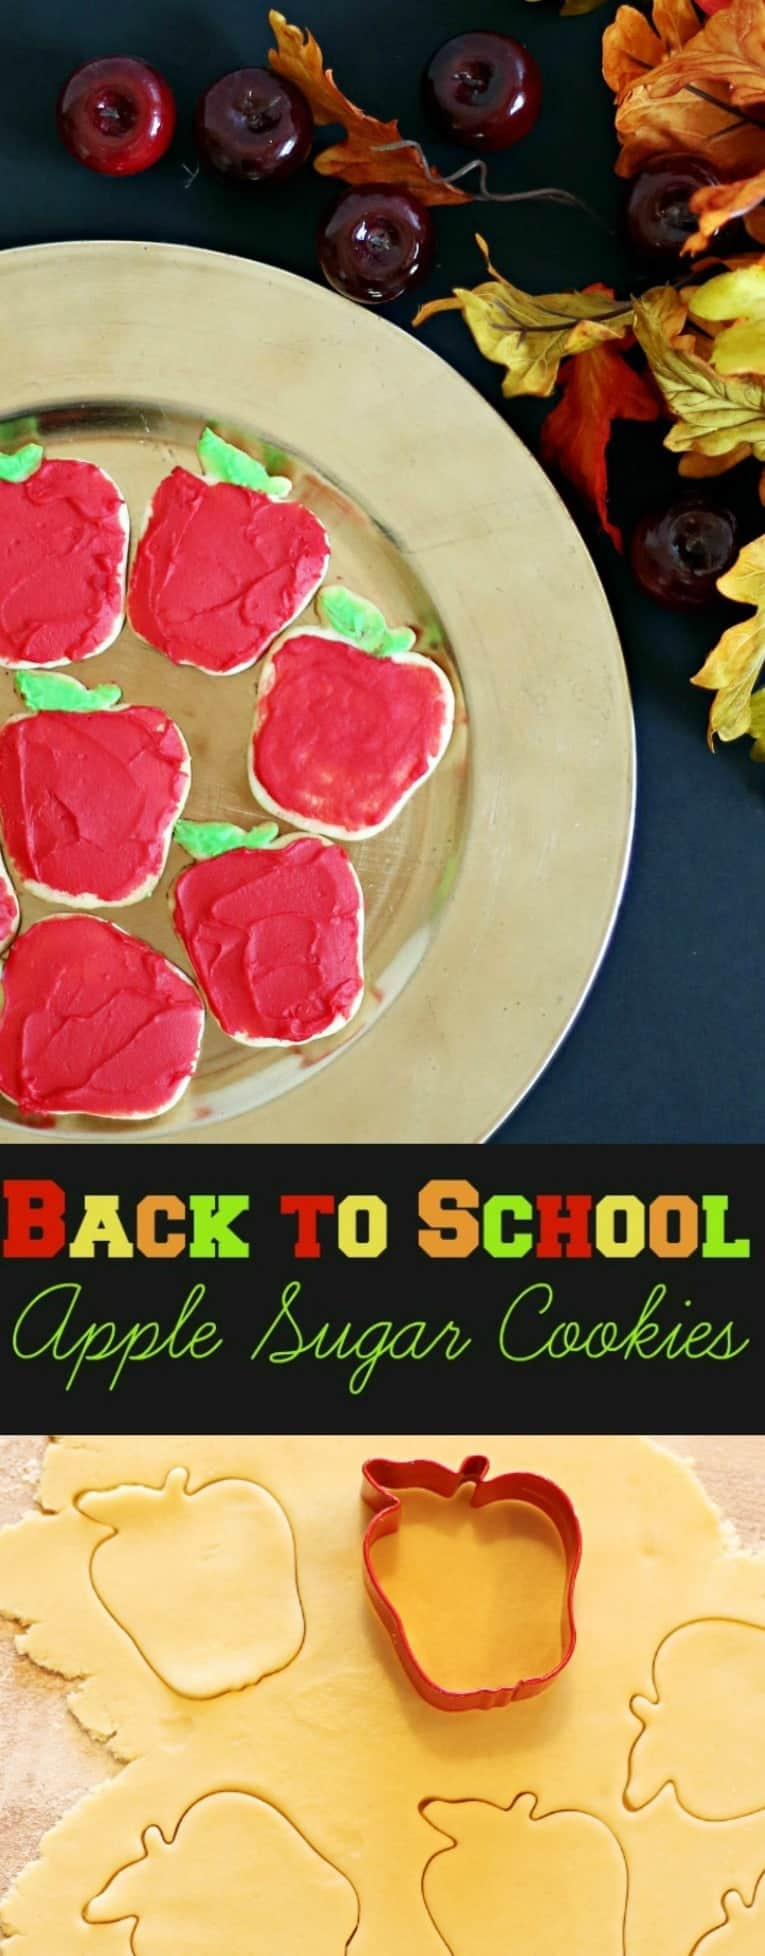 Back to School Roll Out Sugar Apple Shaped Cookies for First Day of School #EarnDoubleAtWalmart AD